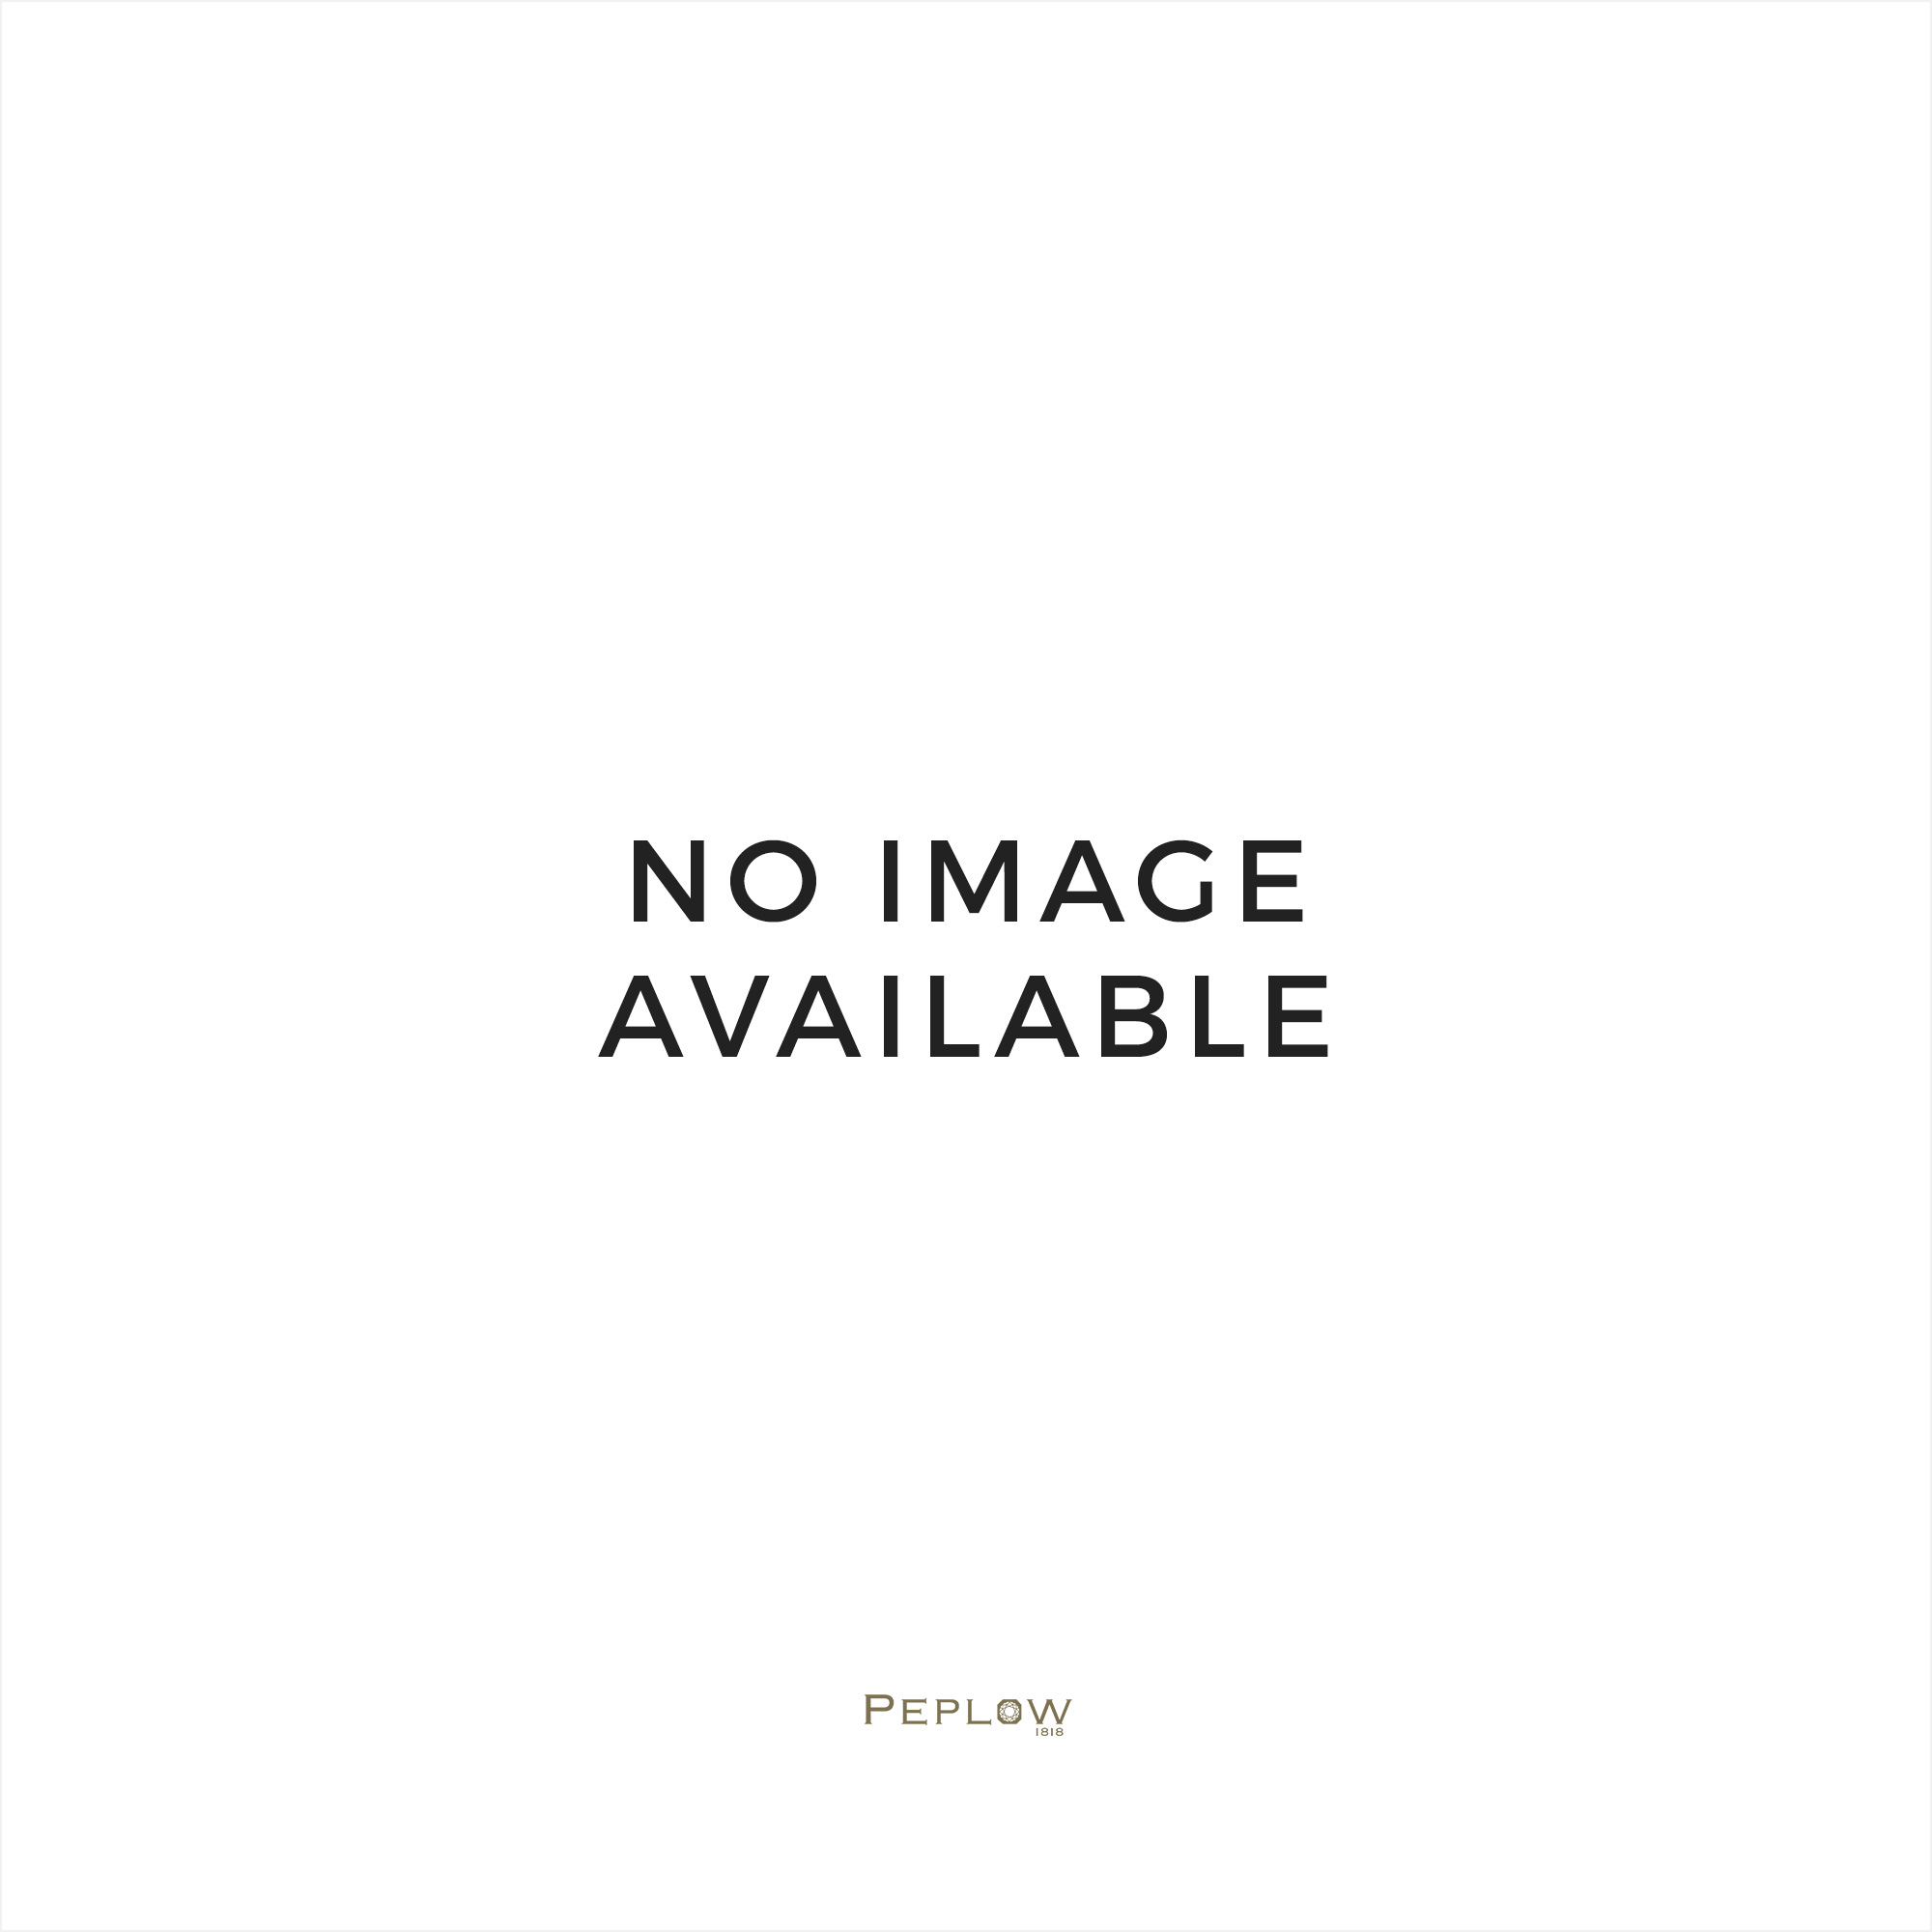 Omega Watches Omega Gents Seamaster Aqua Terra Co-Axial GMT Chronograph Watch